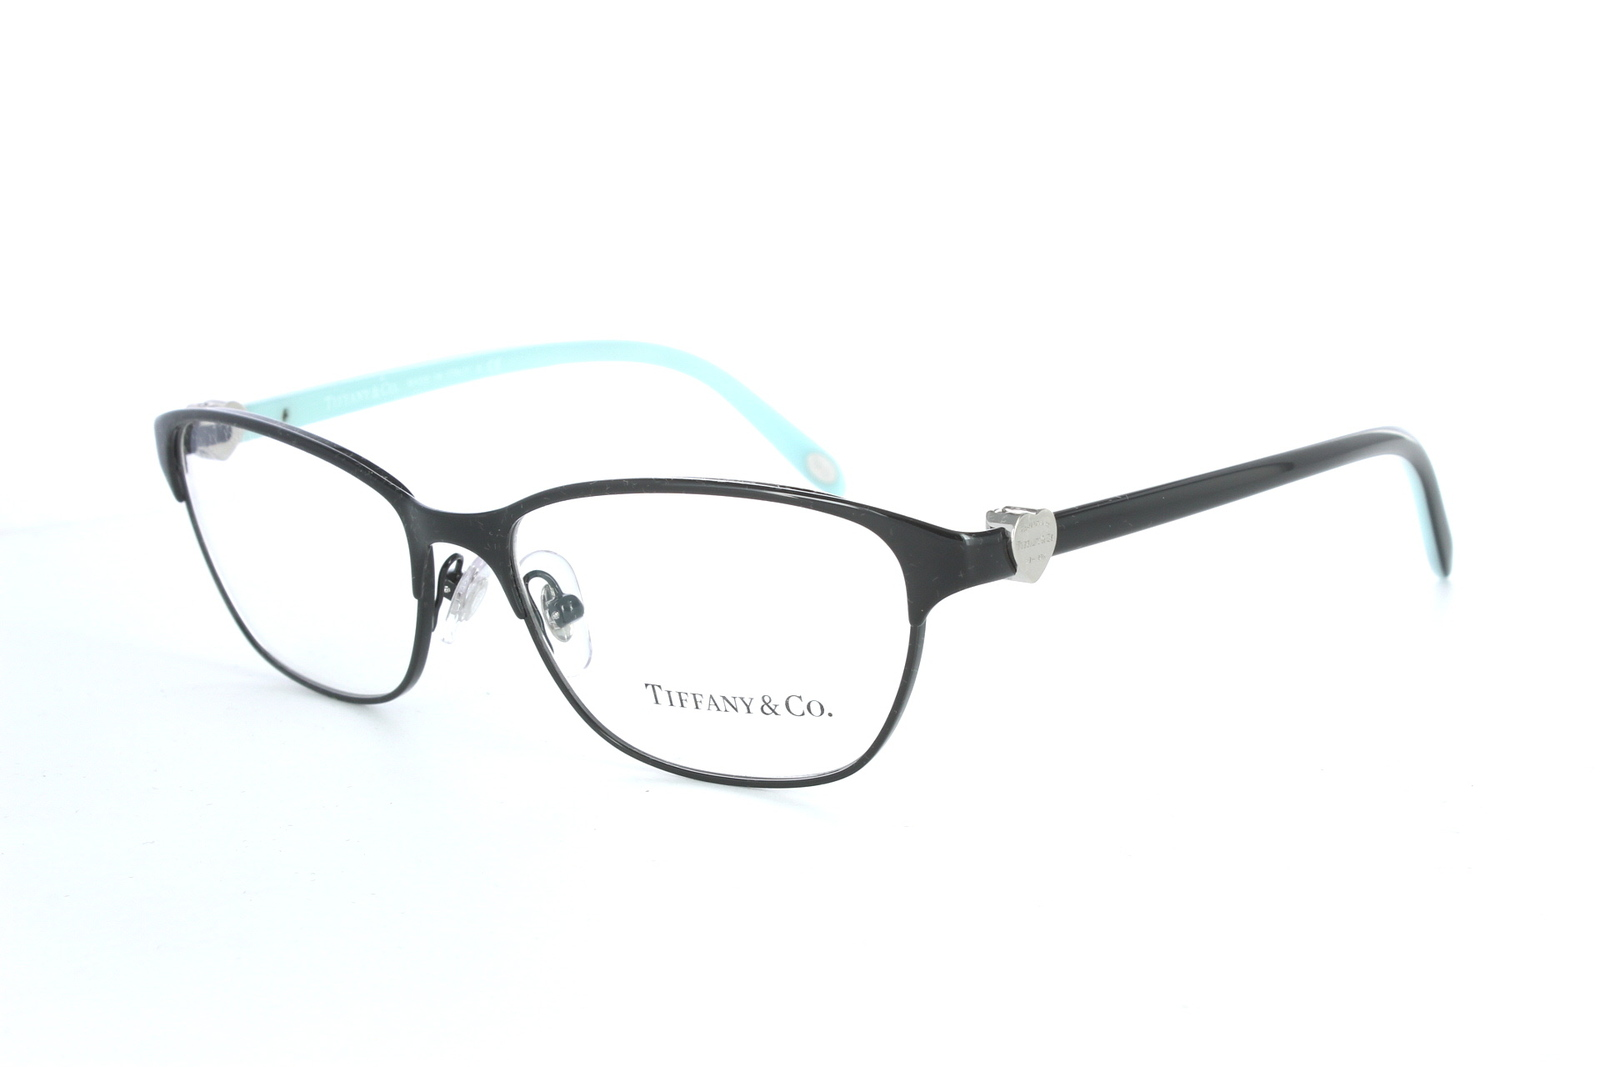 Glasses Frame Company : New Authentic Tiffany & Co. TF1072 6007 51mm Eyeglass ...